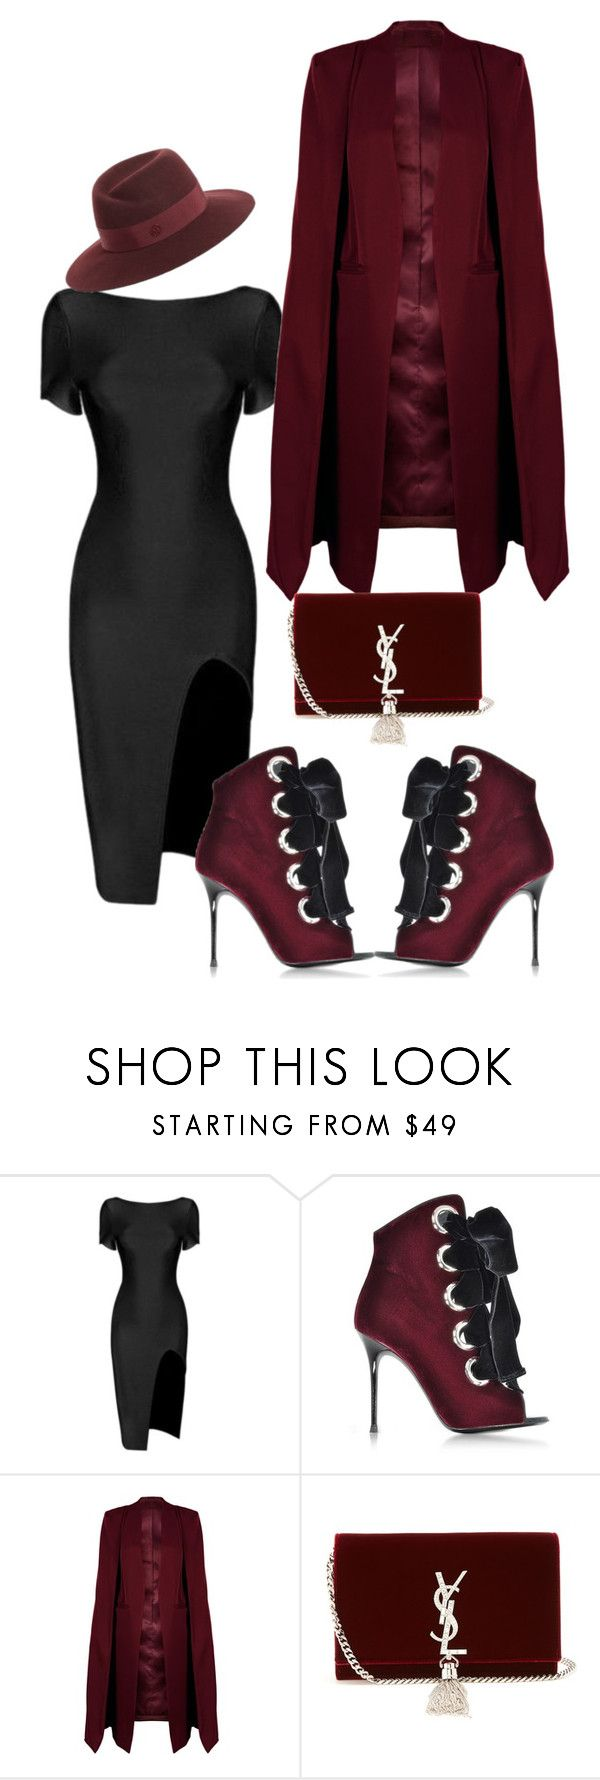 """Untitled #4489"" by styledbycharlieb ❤ liked on Polyvore featuring Giuseppe Zanotti, WithChic, Yves Saint Laurent and Maison Michel"